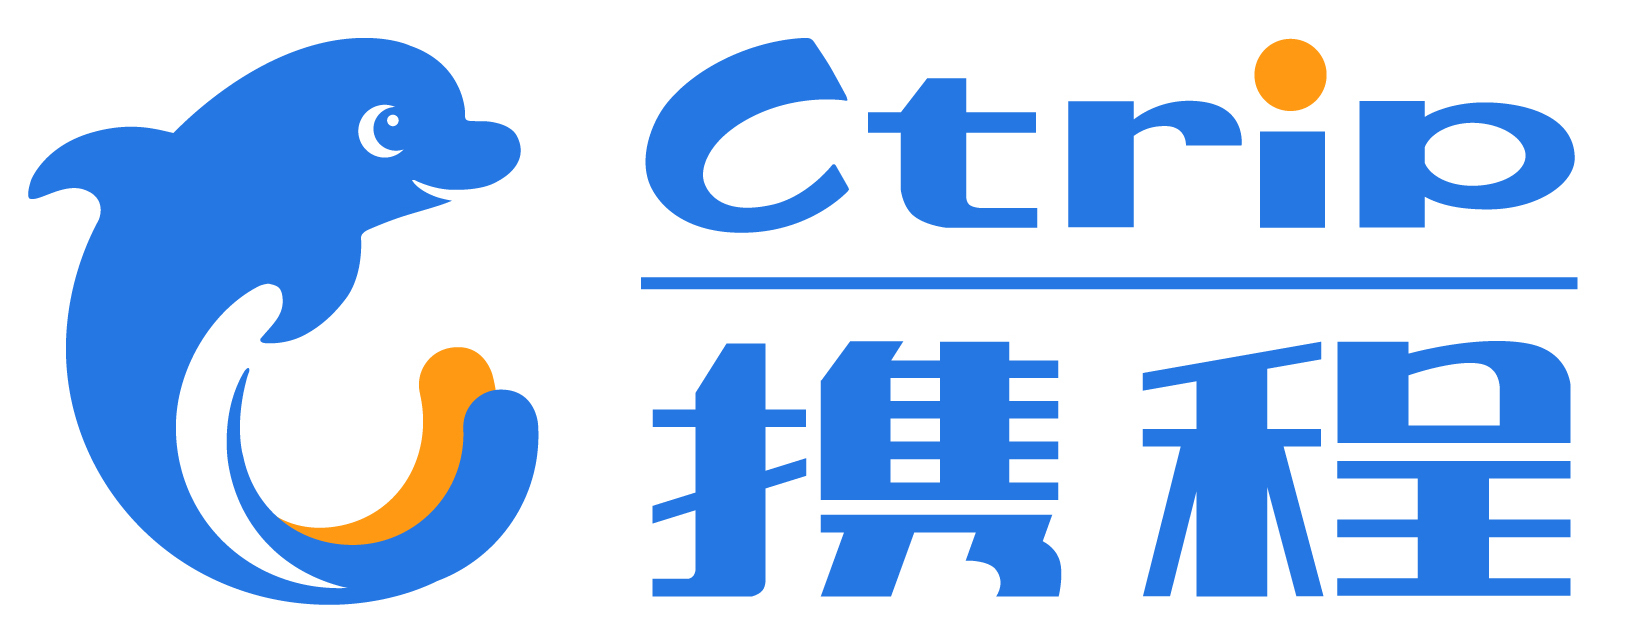 Ctrip Announces Agreement to Acquire Skyscanner